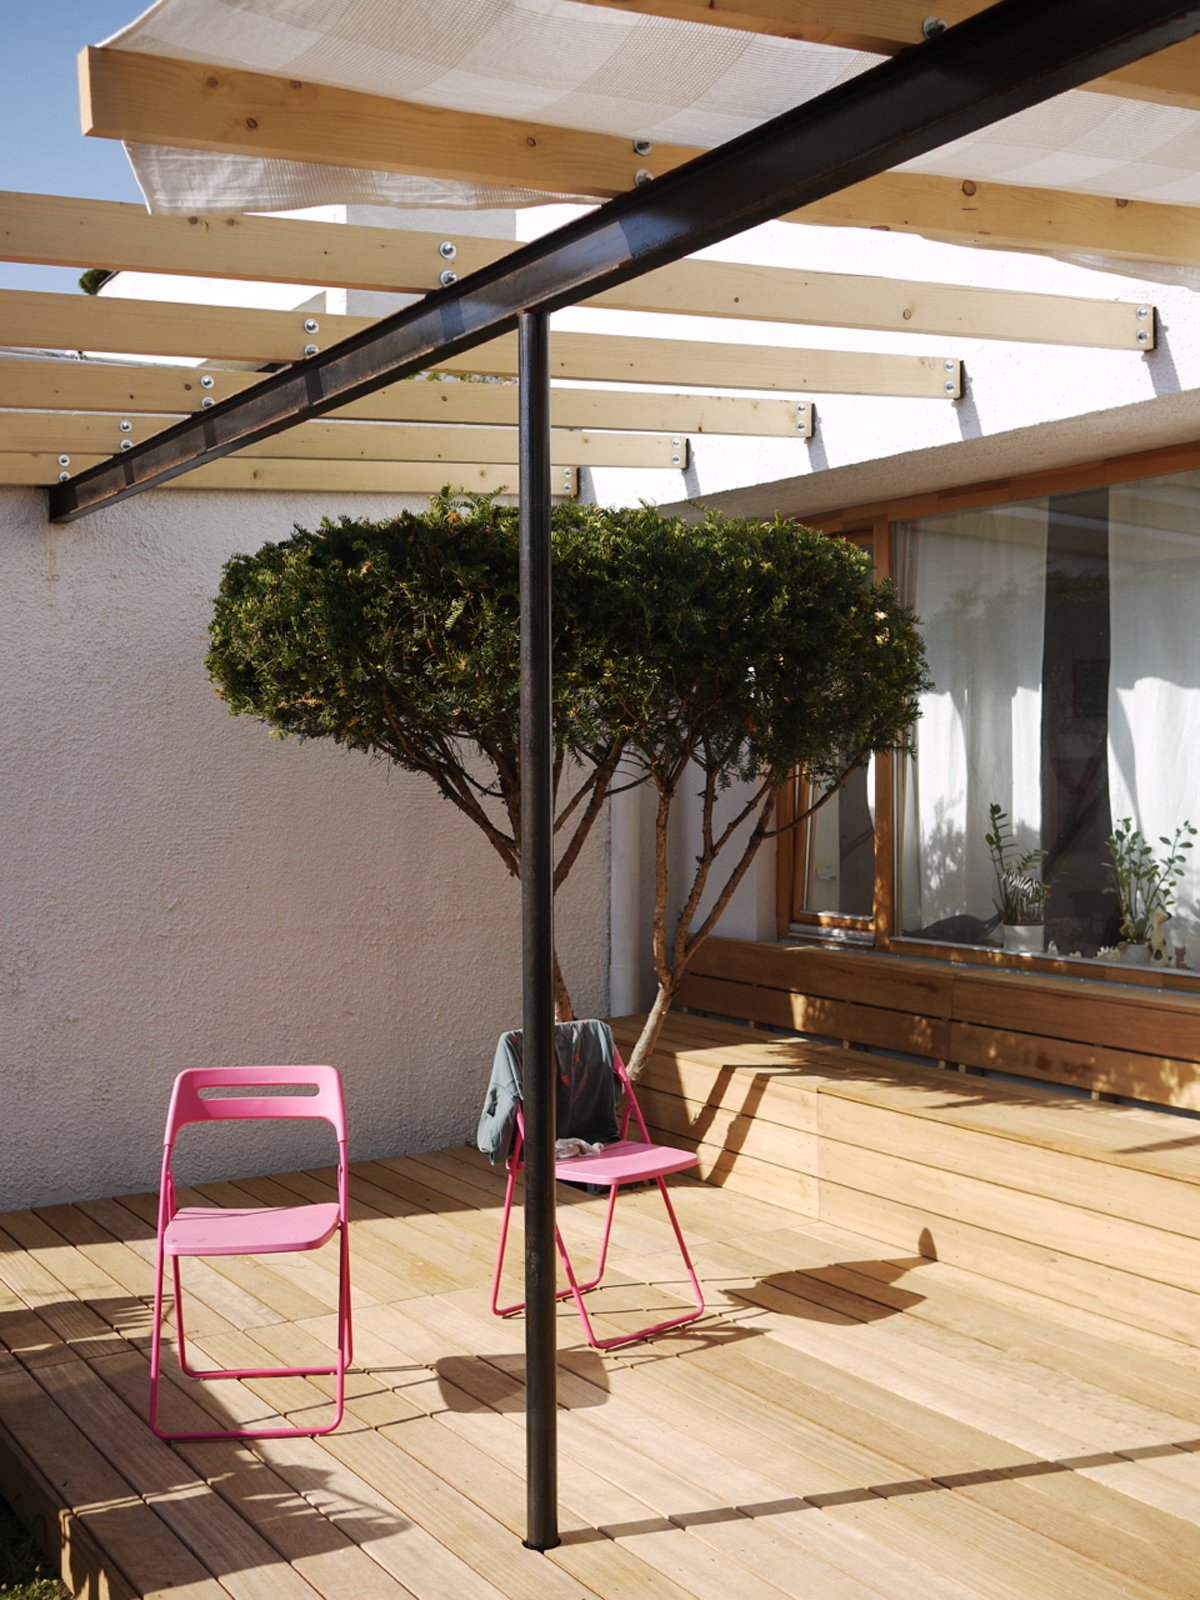 Being on the ground floor has its benefits—namely a bit of outdoor space. The black I-beam supporting the canopy of exposed joists offers a nice contrast to the wood above and below. Pink chairs do the trick as well.  NHR Apartment by Gut Gut by Aaron Britt